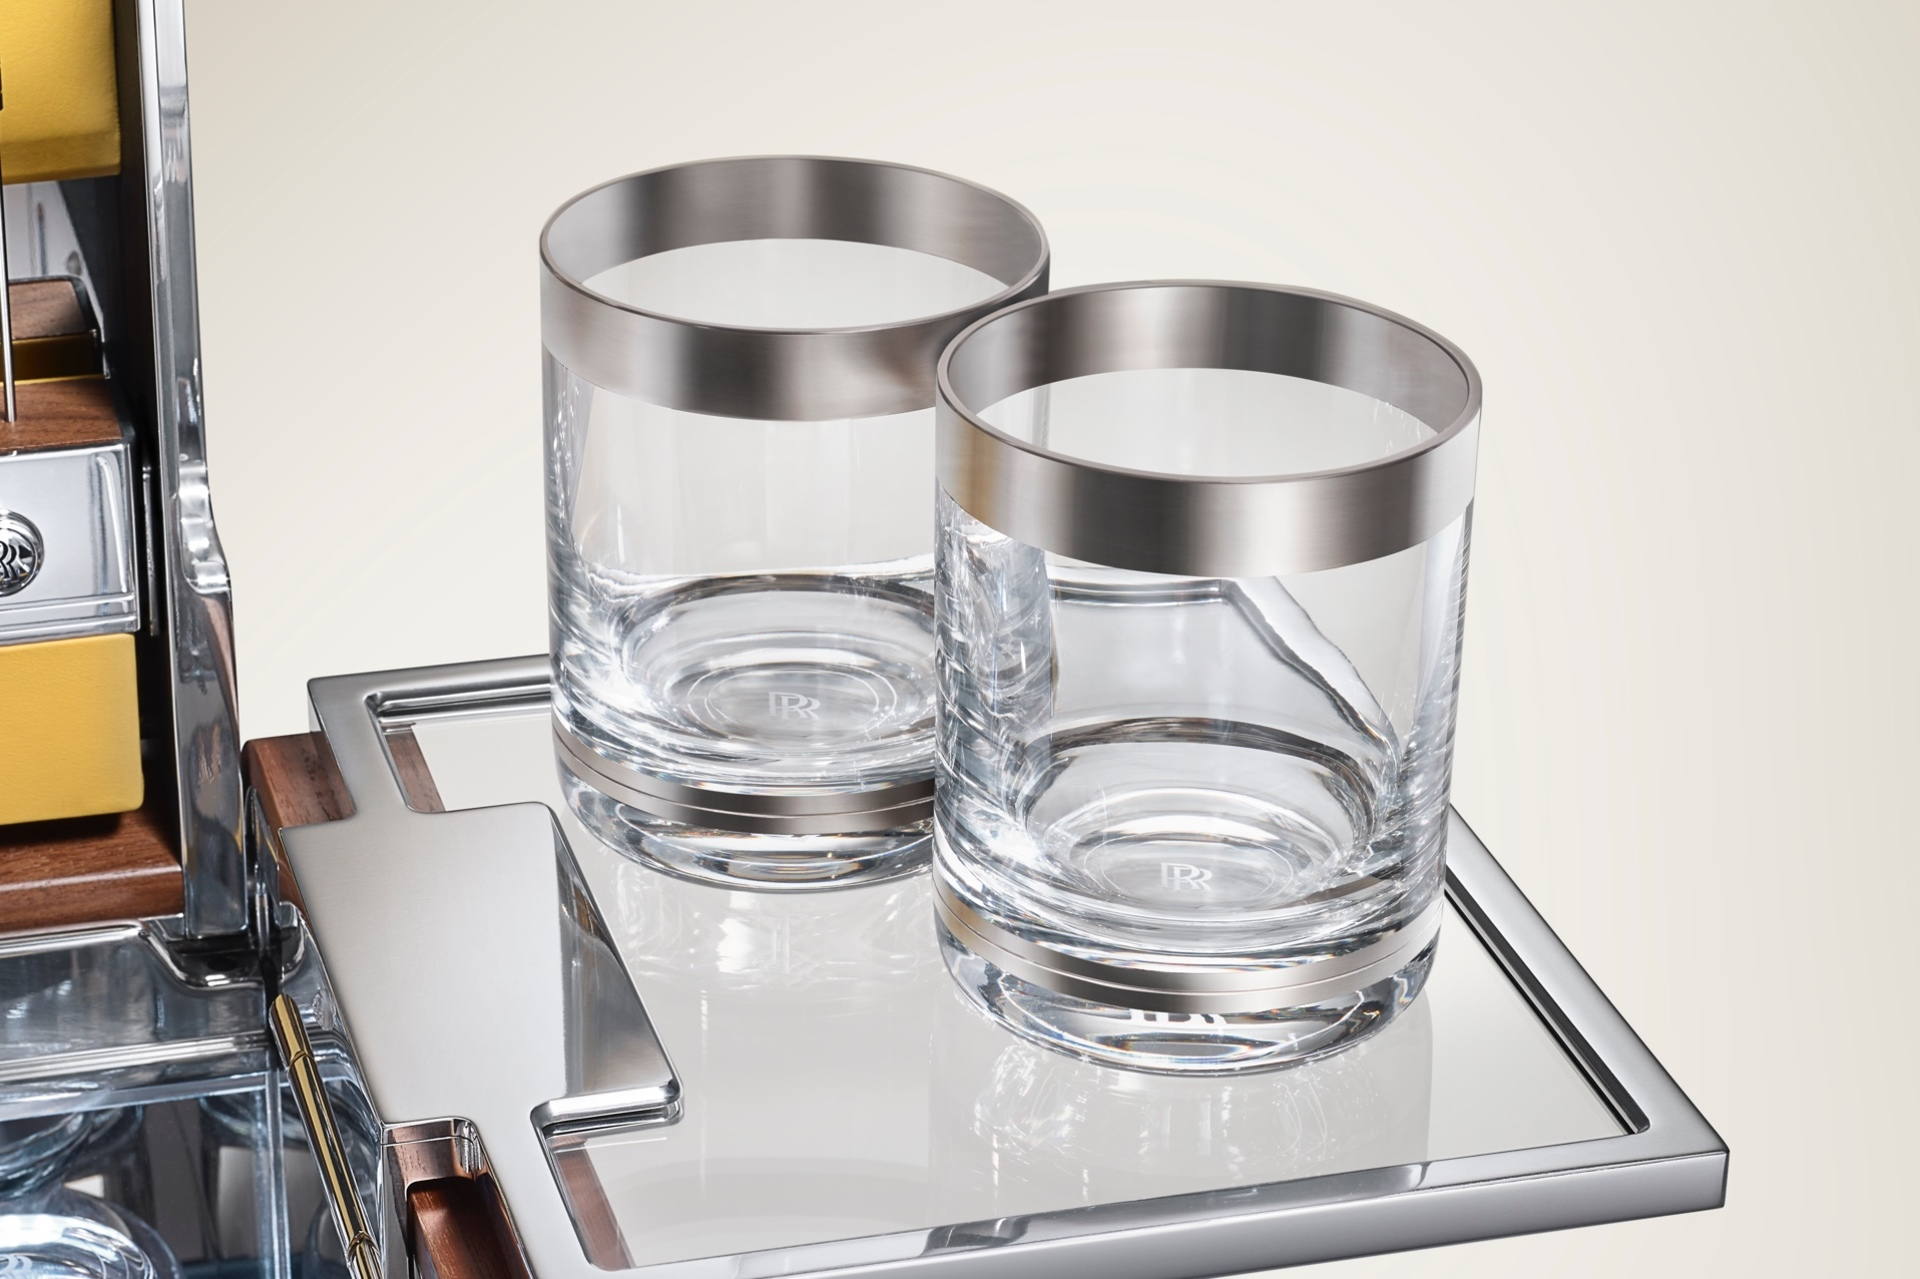 The bespoke Rolls-Royce cocktail glasses